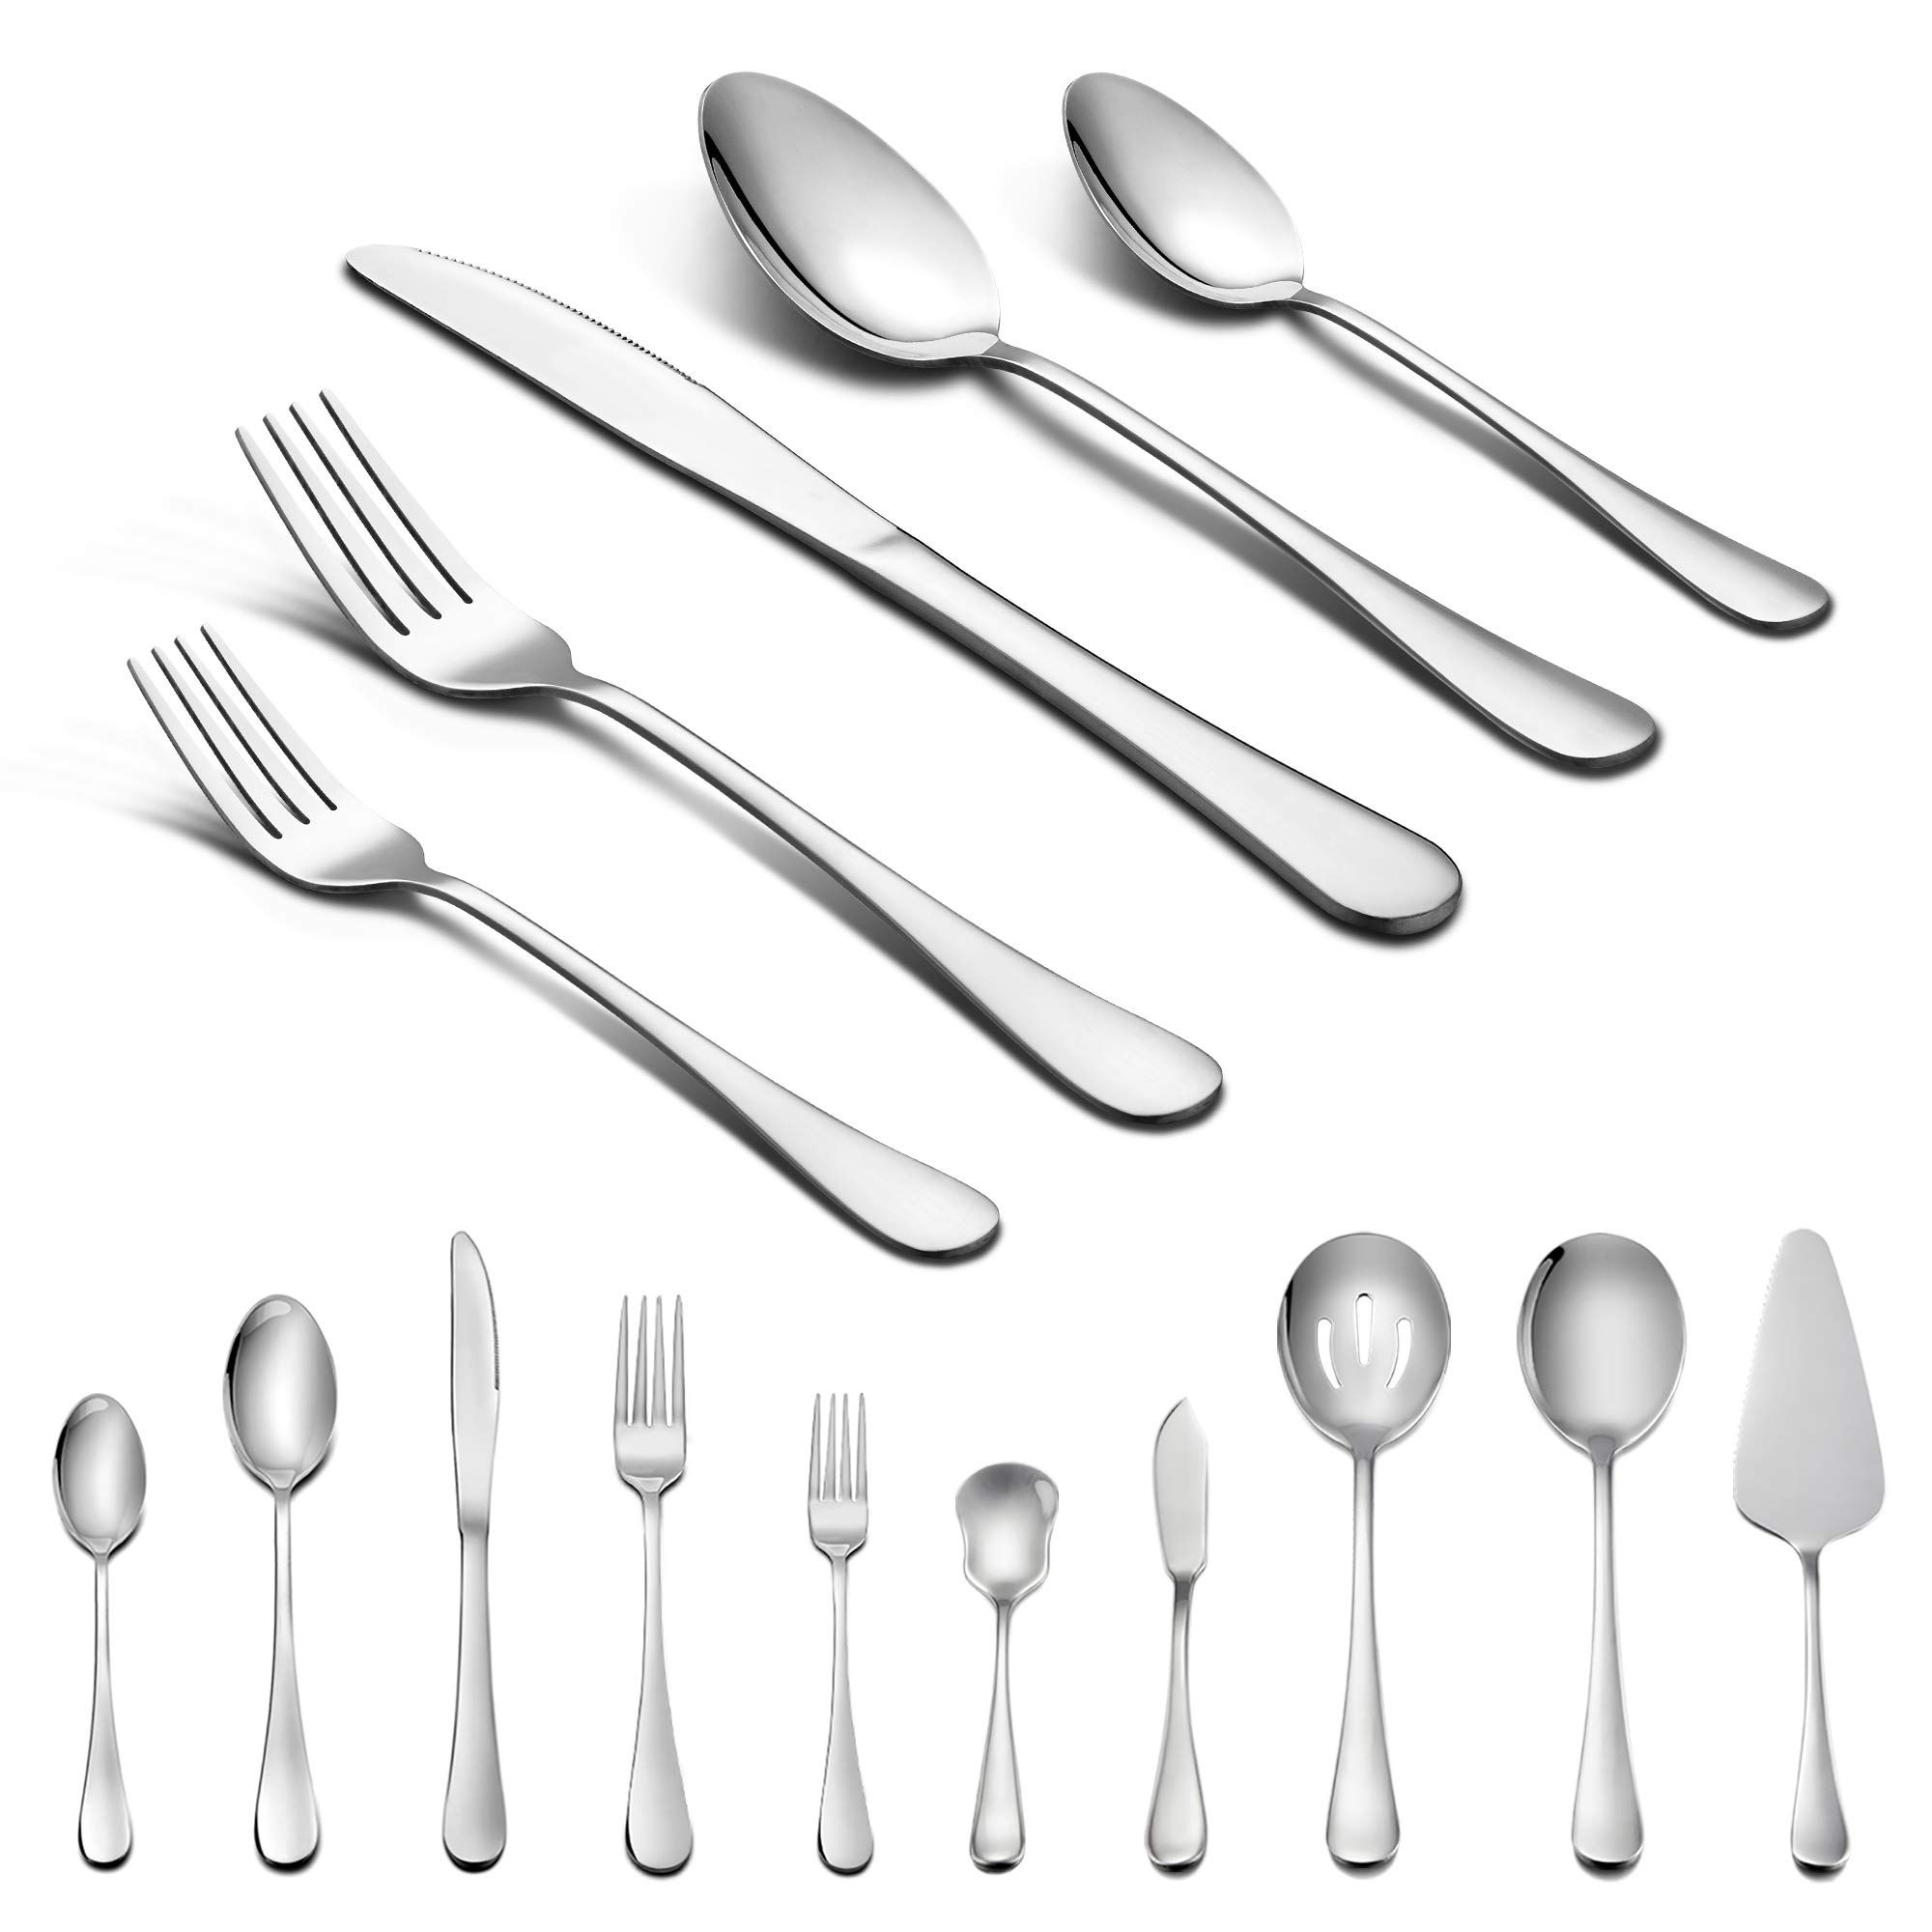 45piece Silverware Set With Serving Pieces Lianyu Flatware Set Service For 8 Stainless Steel Cutlery For Ki Silverware Set Stainless Steel Cutlery Flatware Set